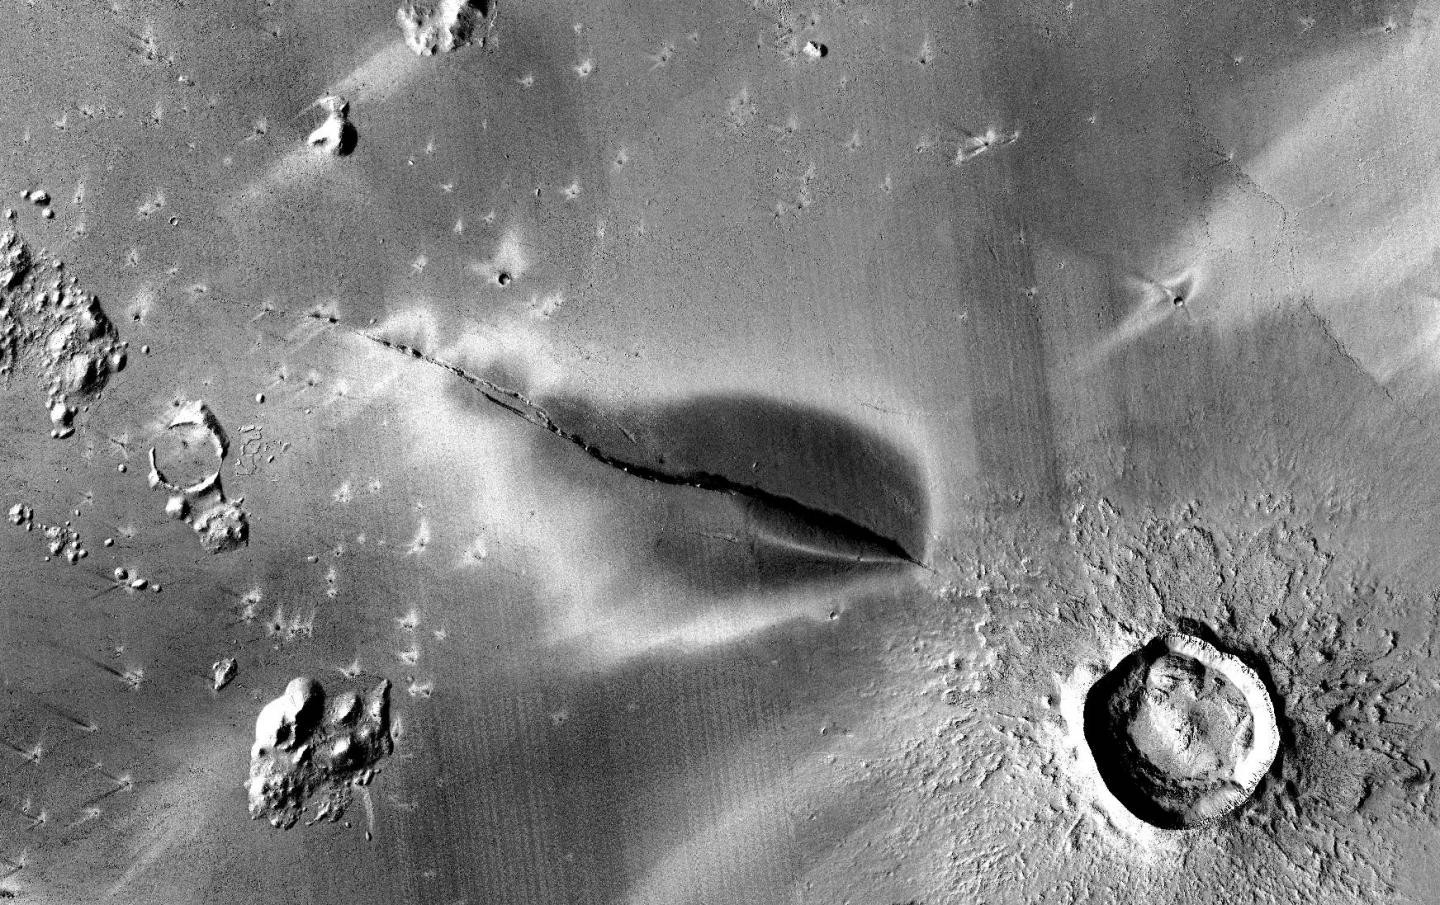 Signs of recent volcanic activity at Cerberus Fossae.